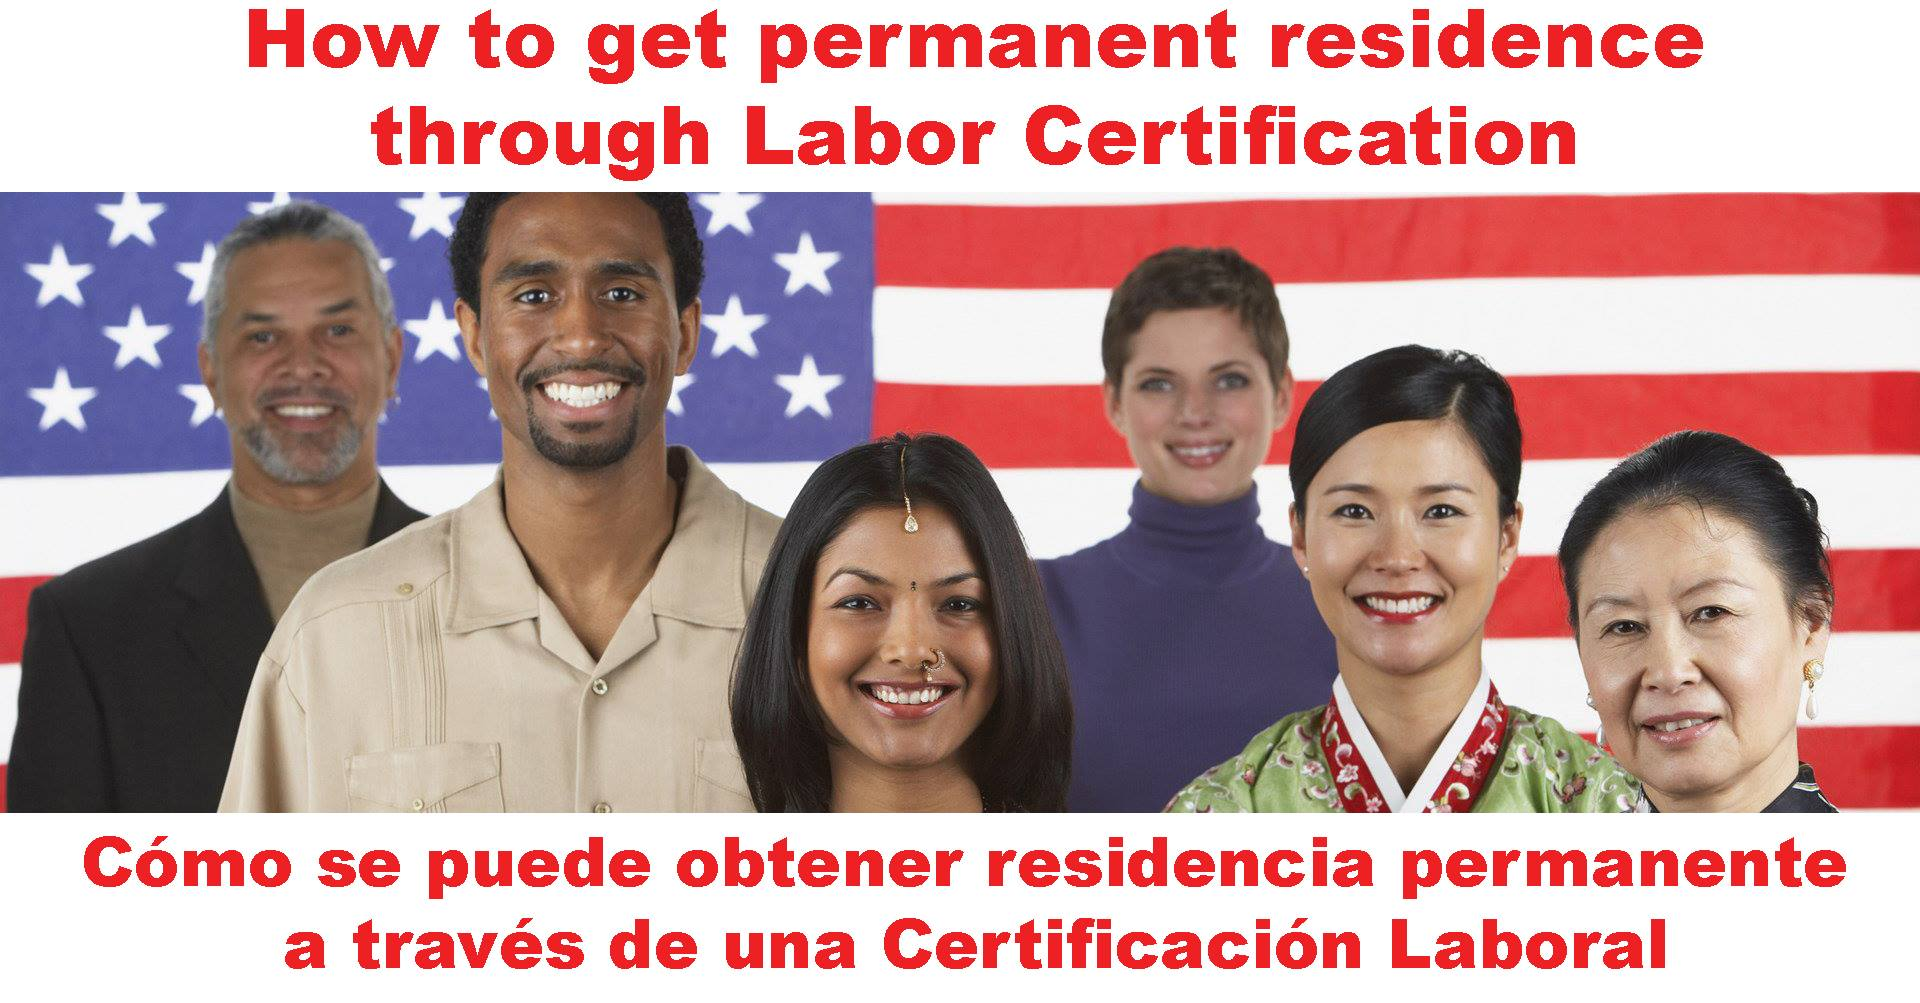 Immigration Seminars in Passaic, Manhattan and Jackson Heights - How to get permanent residence through Labor Certification